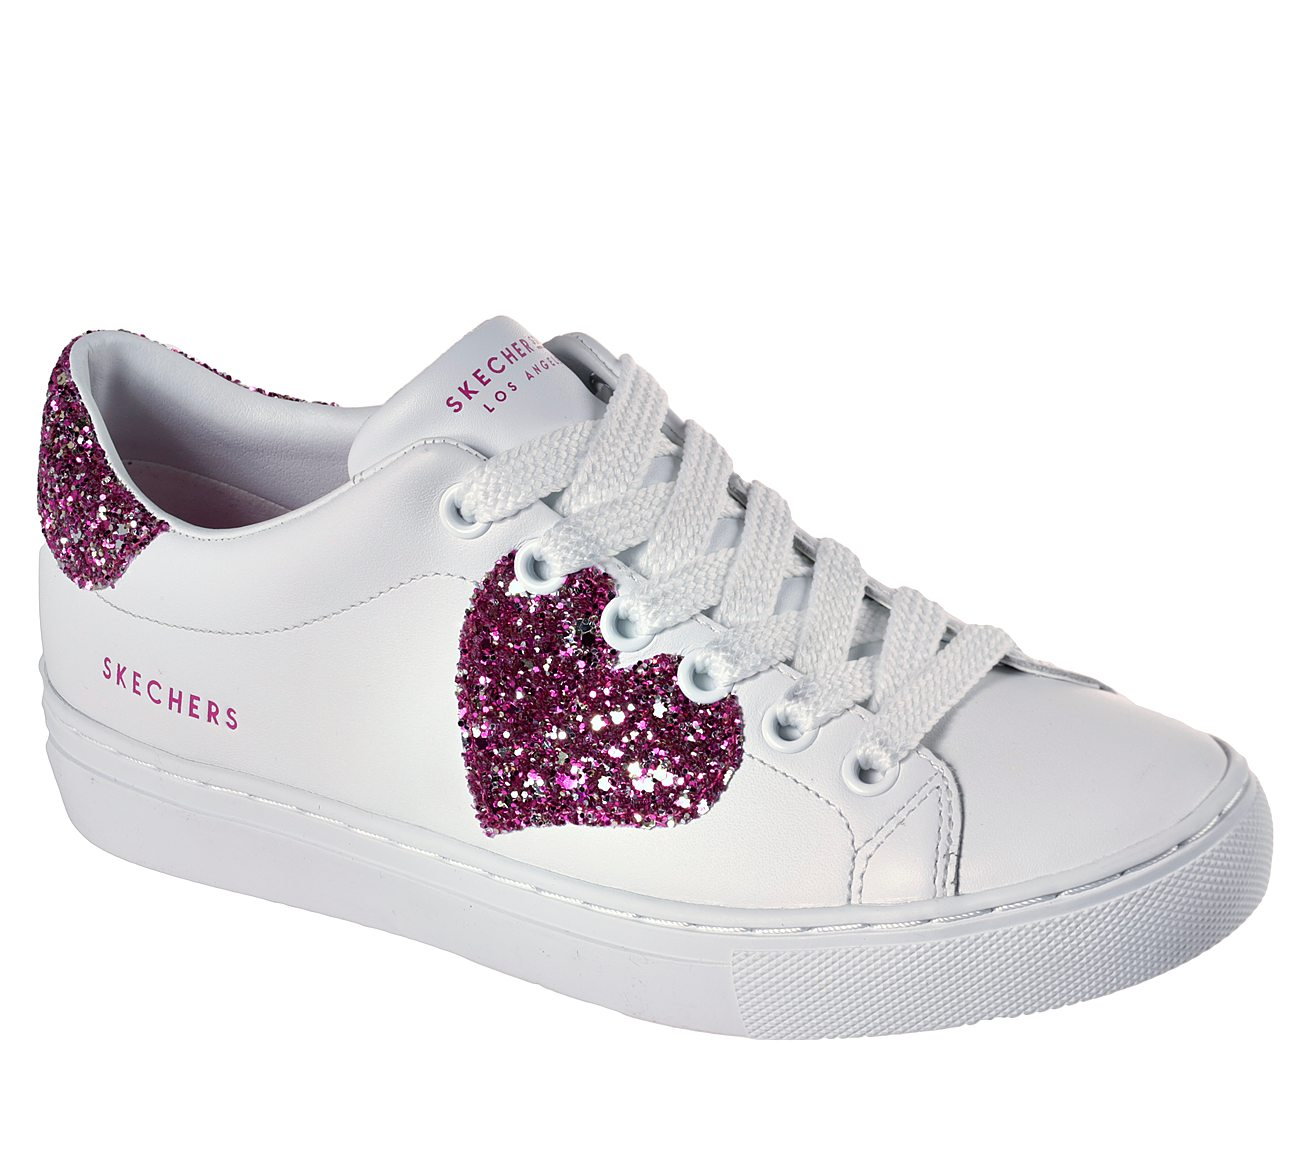 07a97793a67 Buy SKECHERS Side Street - Love Always SKECHER Street Shoes only  65.00